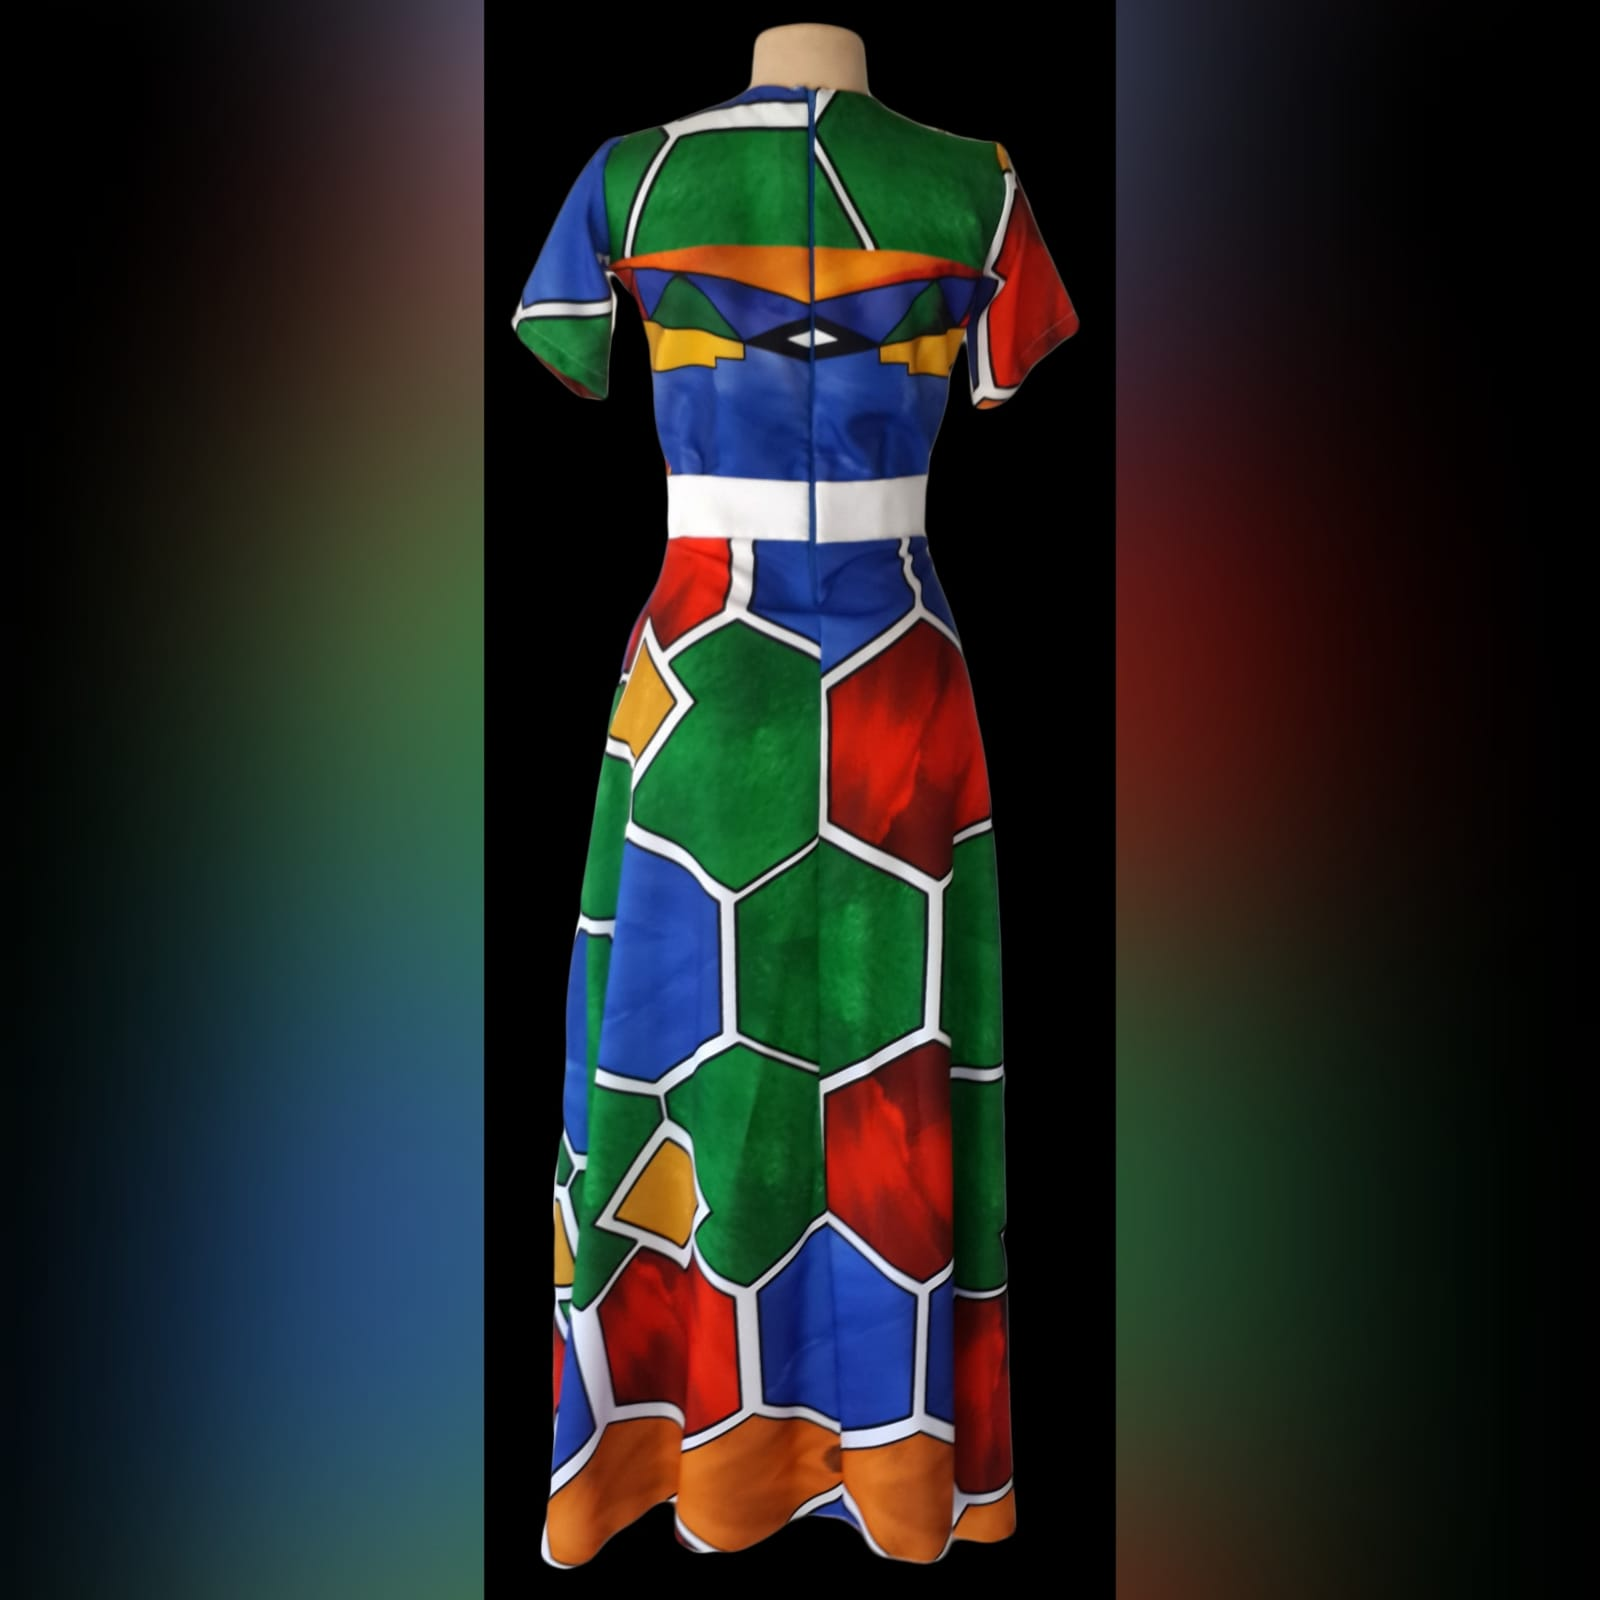 Ndebele empire fit dress with matching shirt 5 custom printed ndebele empire fit, long dress with a white under bust belt with men's matching shirt.